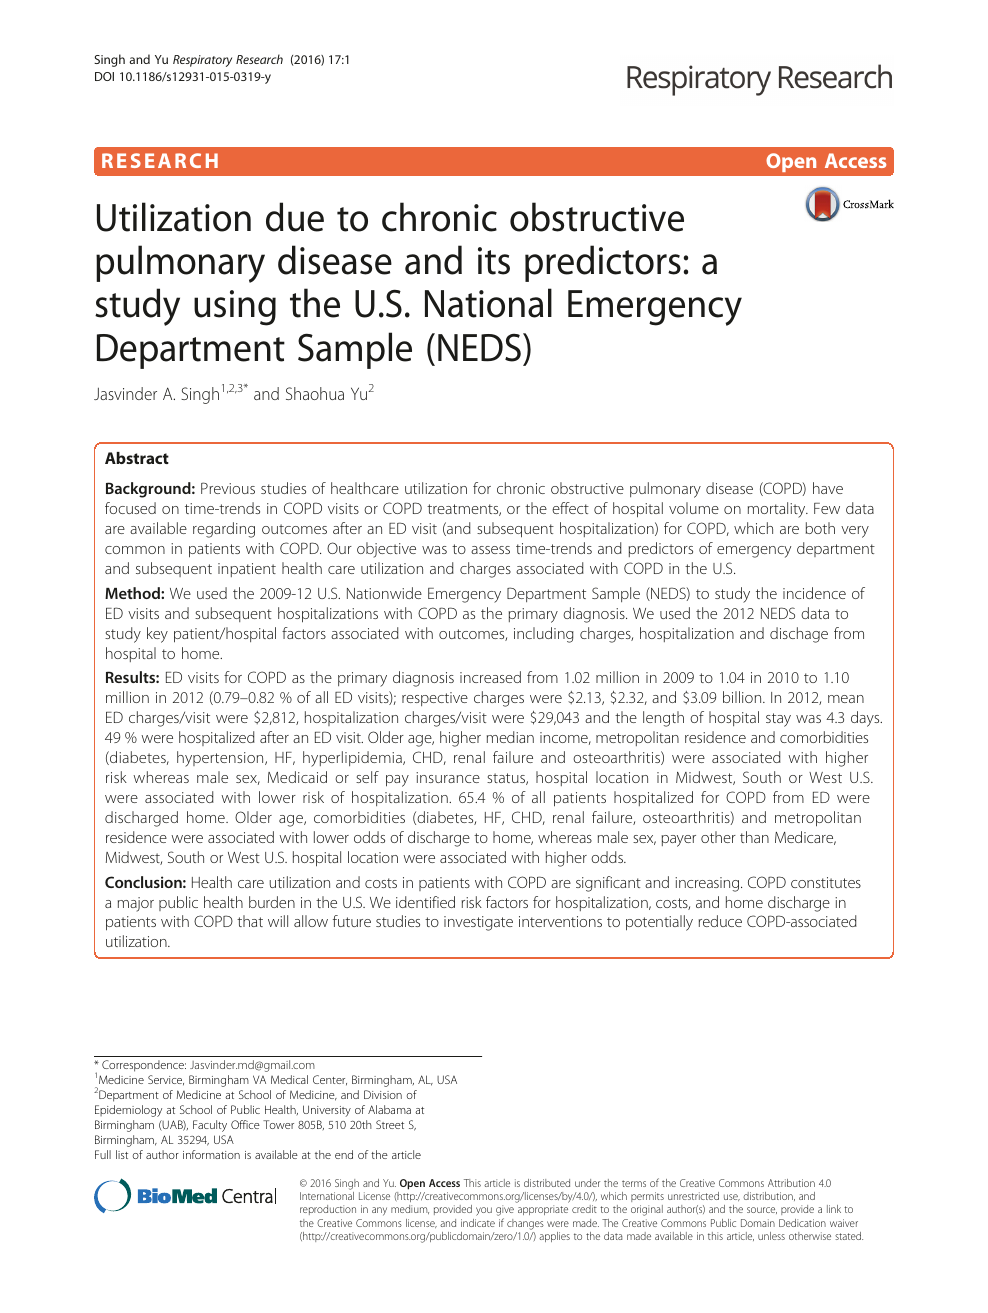 Utilization due to chronic obstructive pulmonary disease and